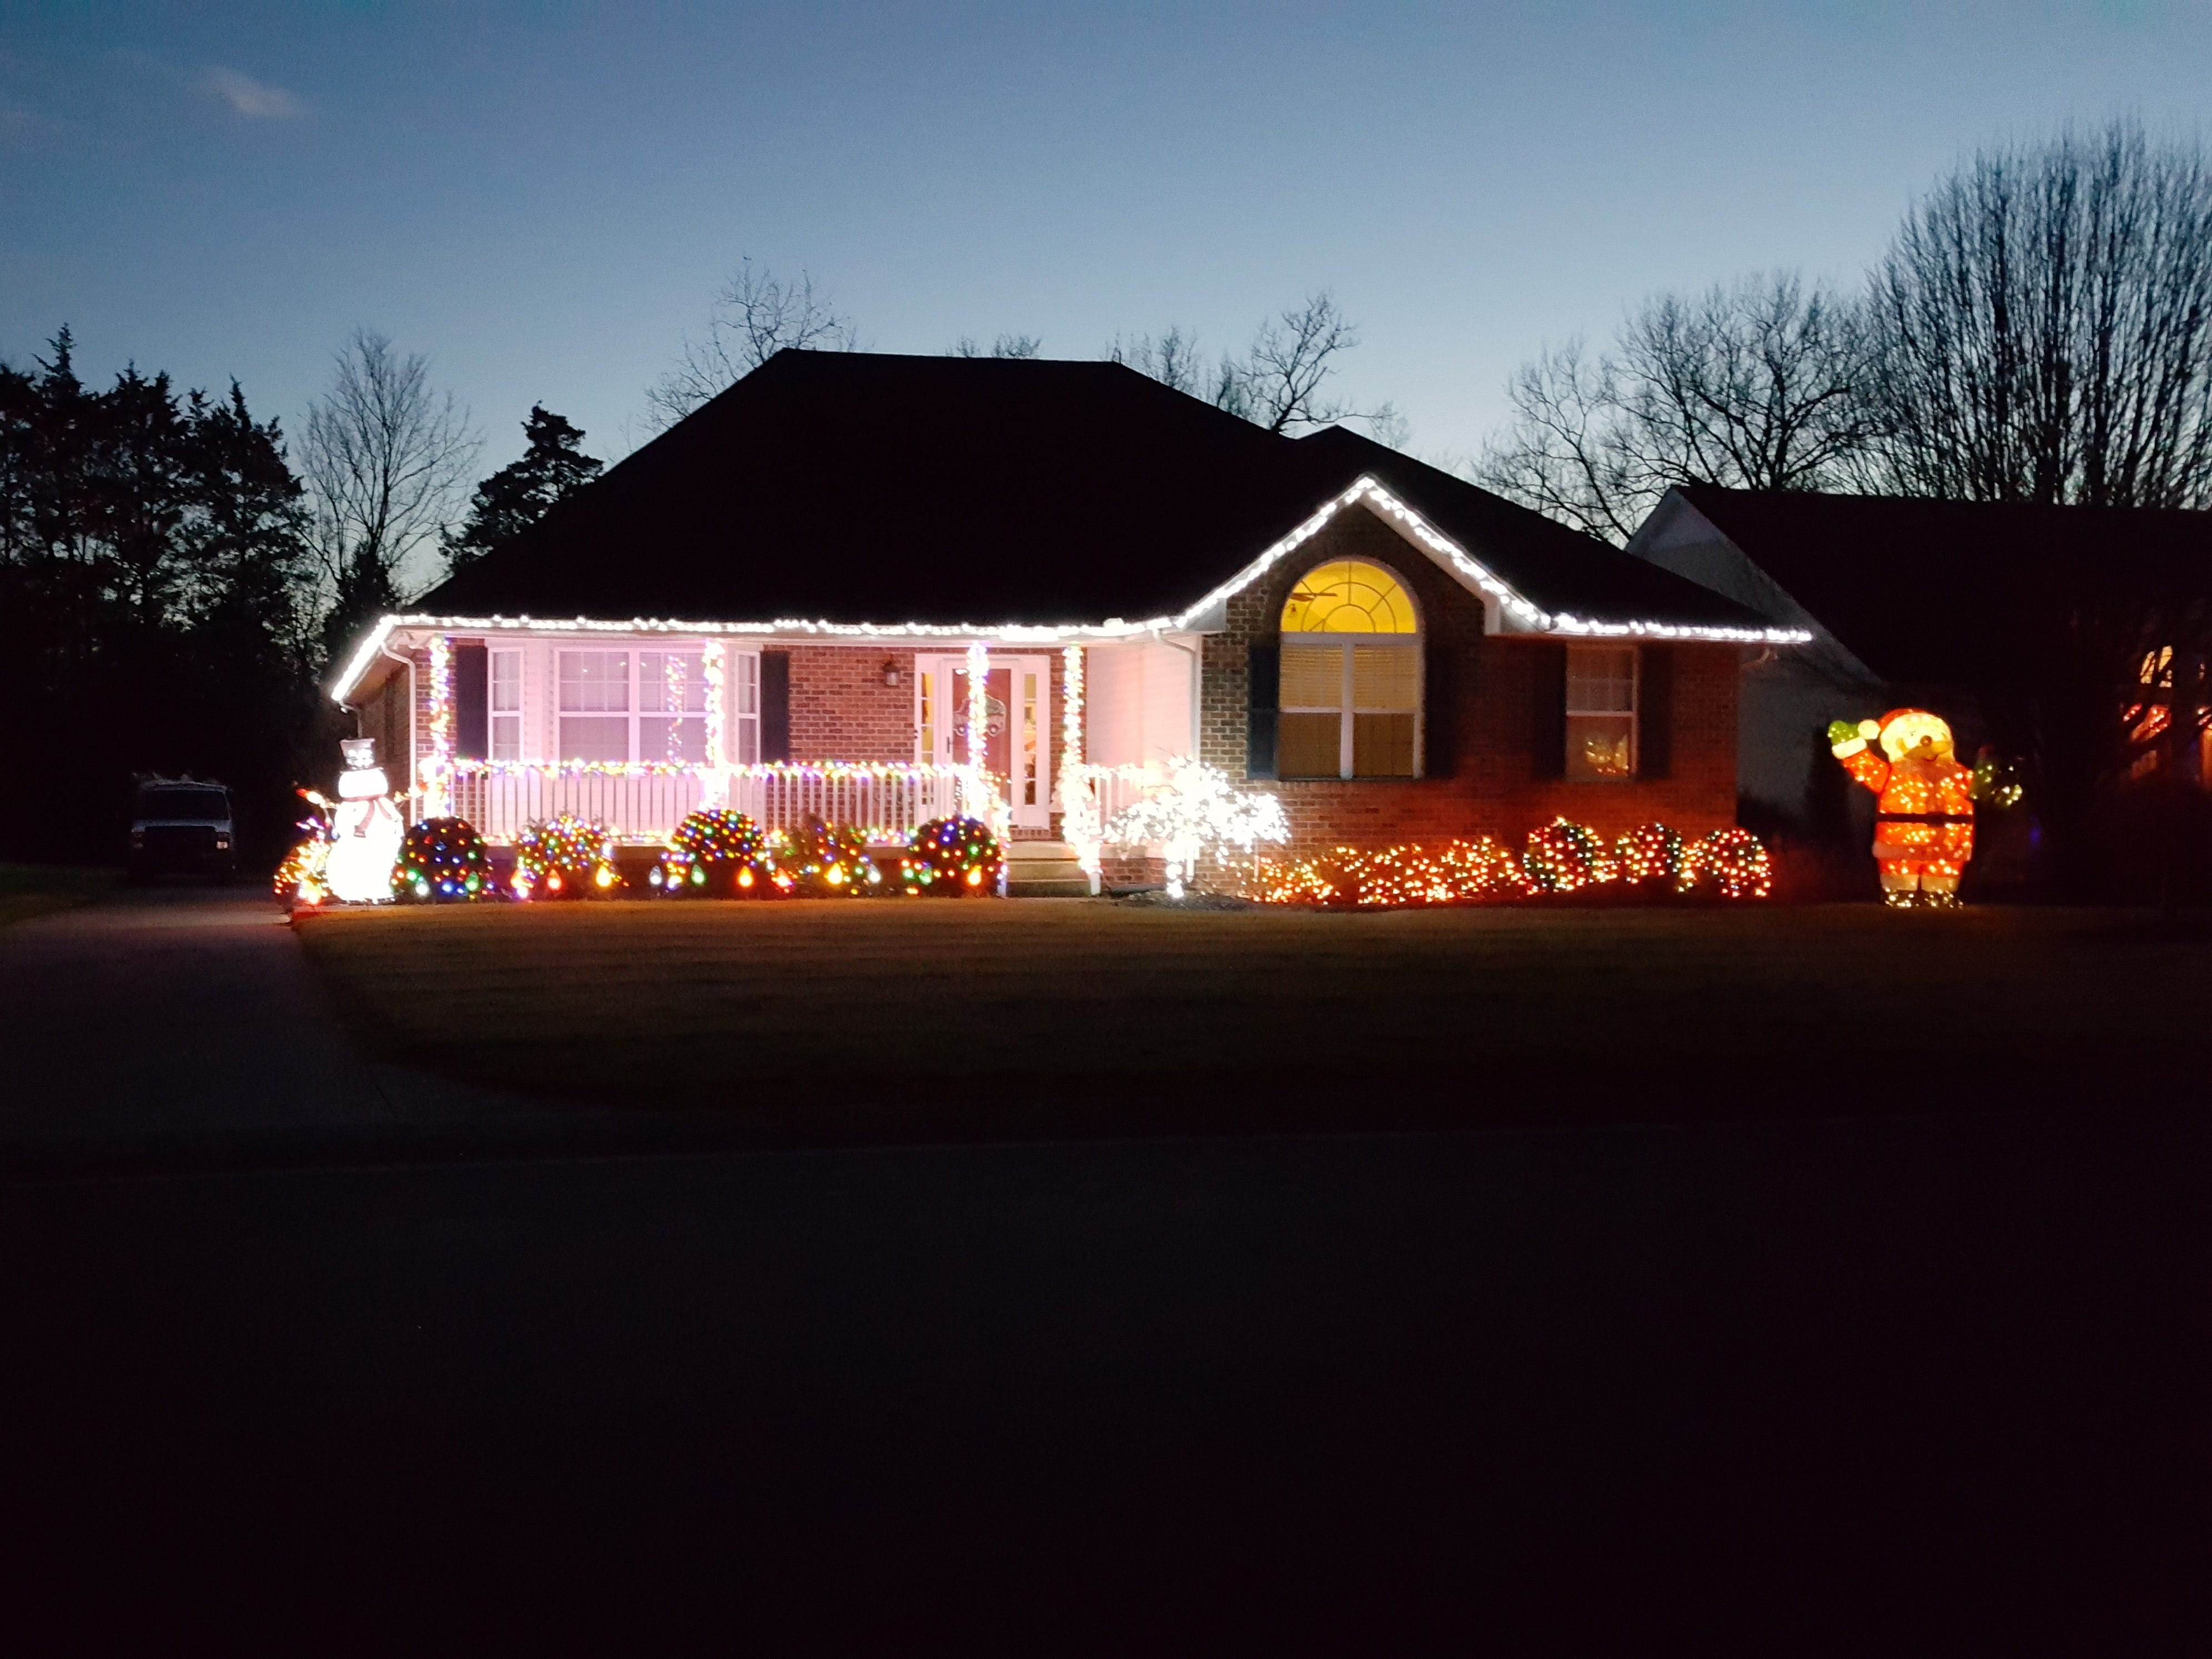 The home of Brian and Lisa Hollingsworth on Secretariat Drive in Mt. Juliet is decorated with Christmas lights.